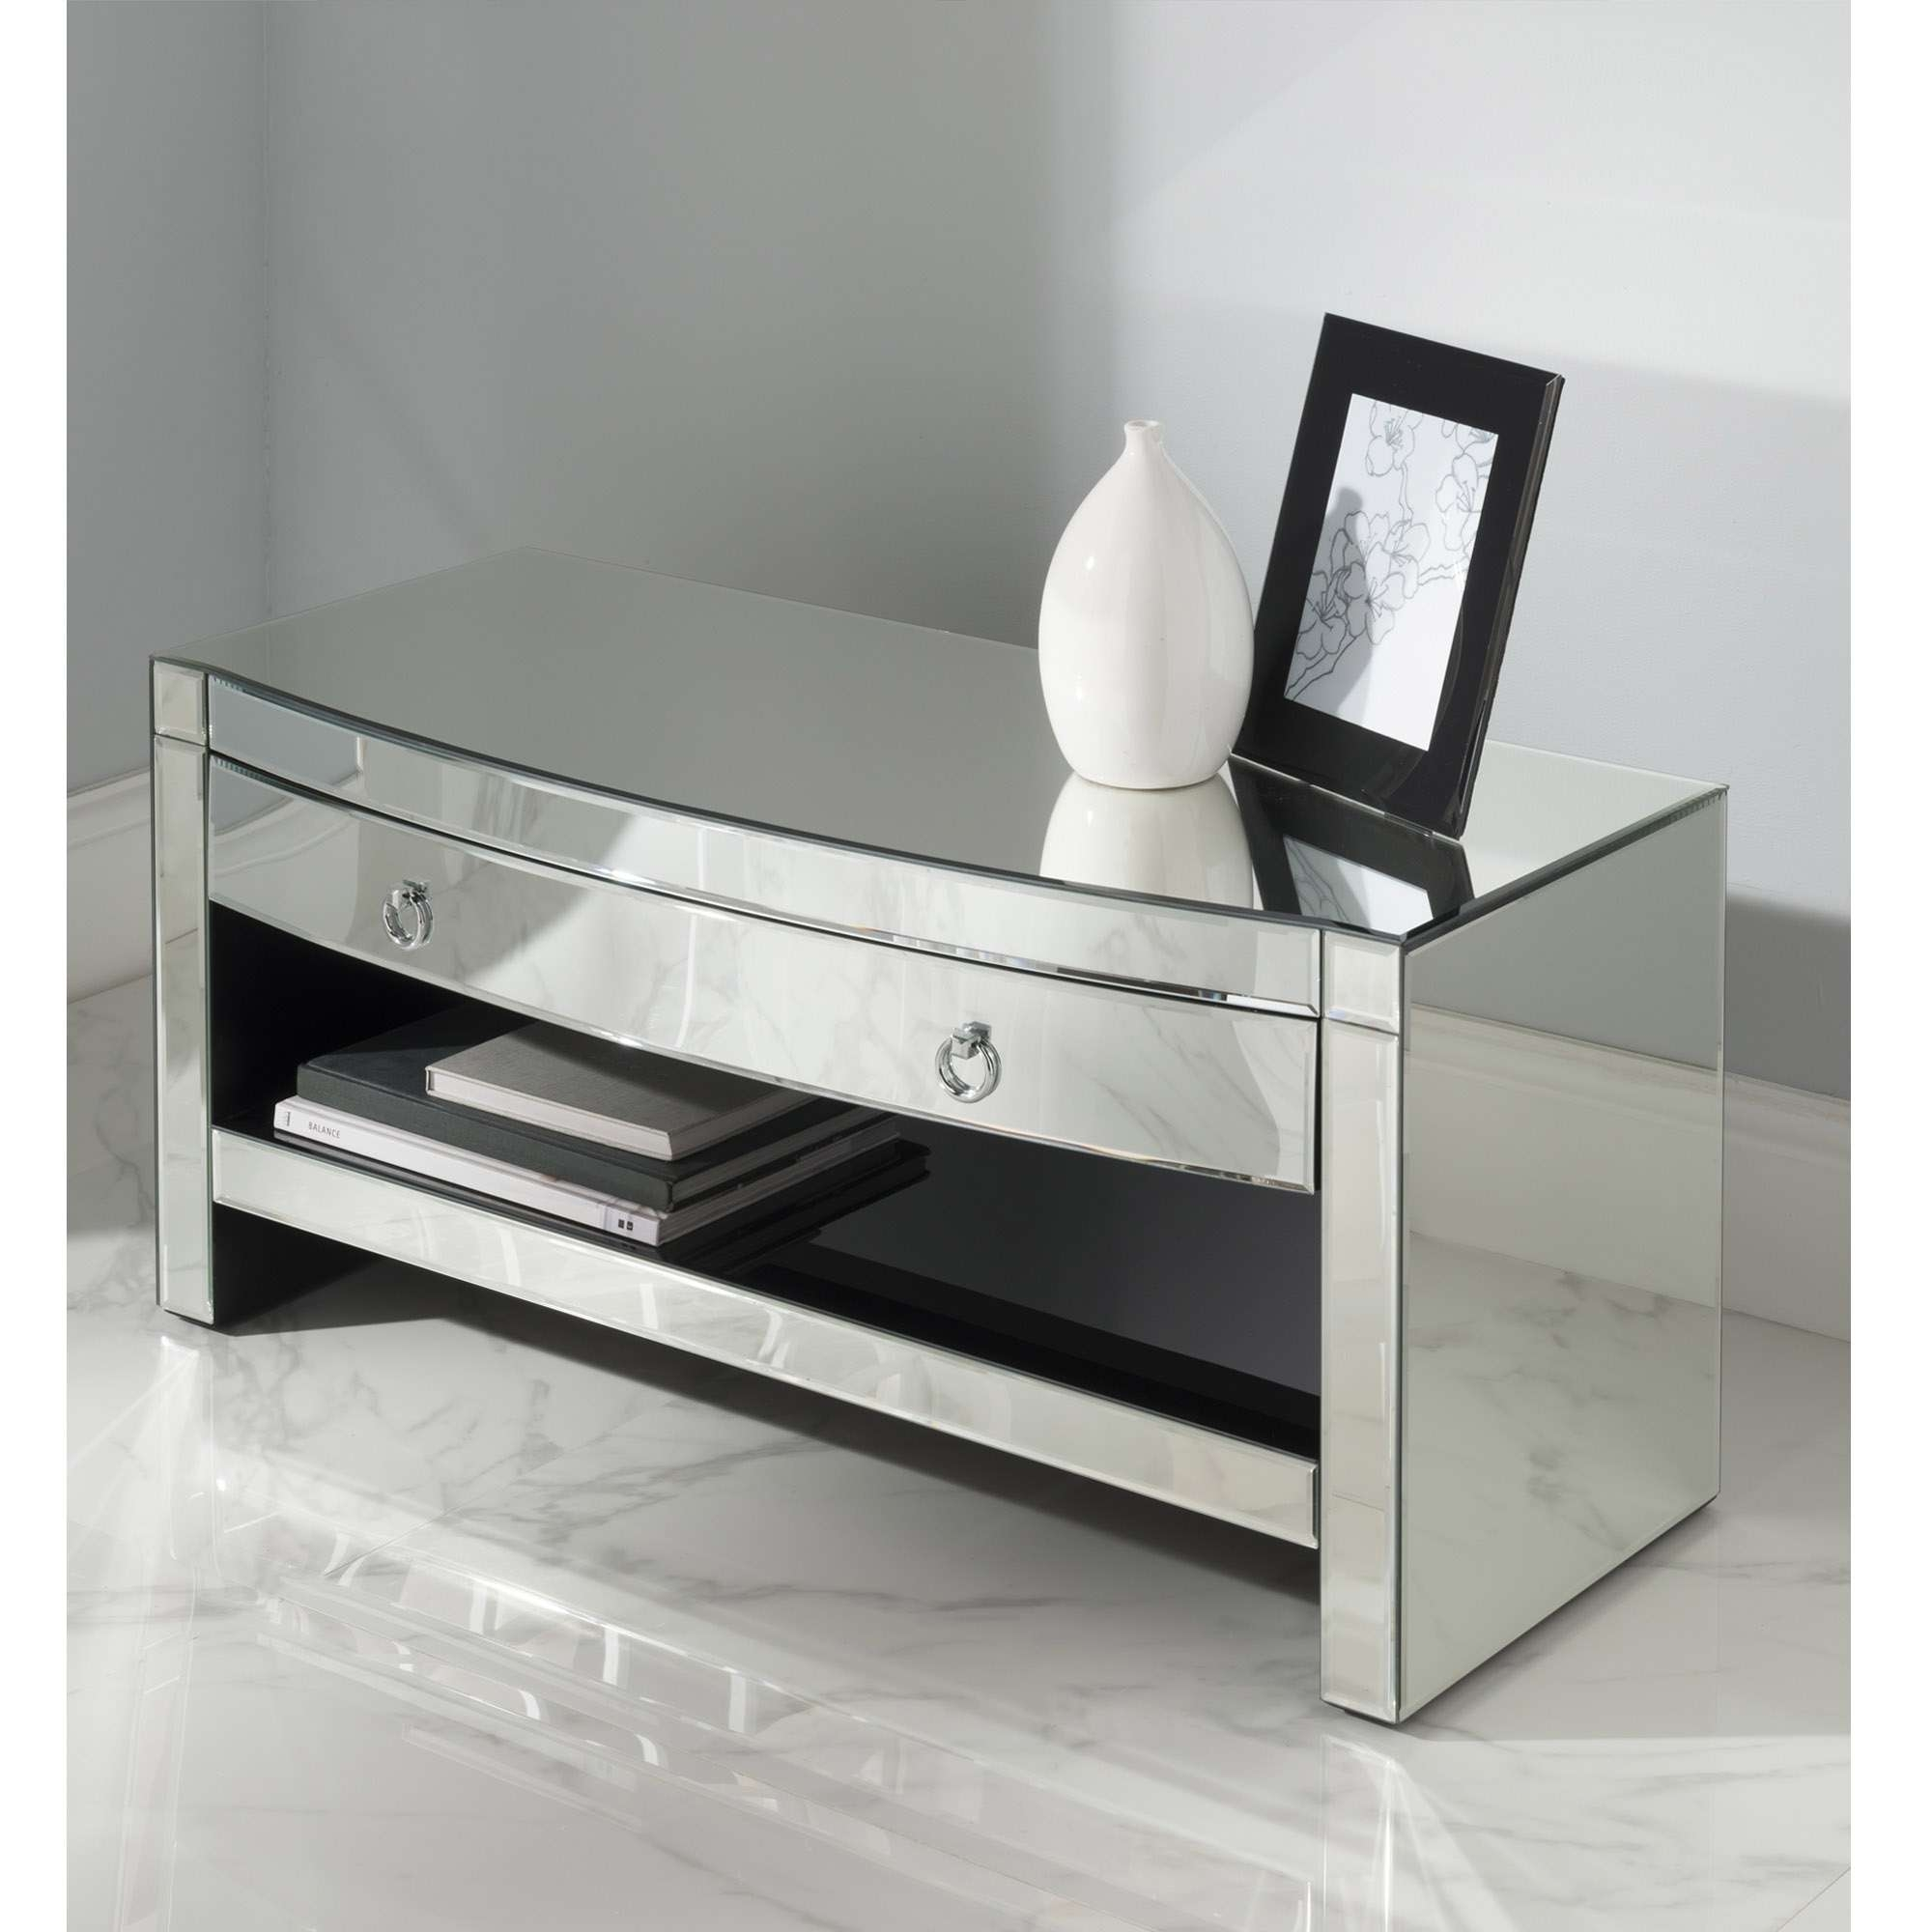 Florence Mirrored Tv Cabinet | Venetian Glass Furniture Pertaining To Mirrored Tv Cabinets (View 4 of 20)